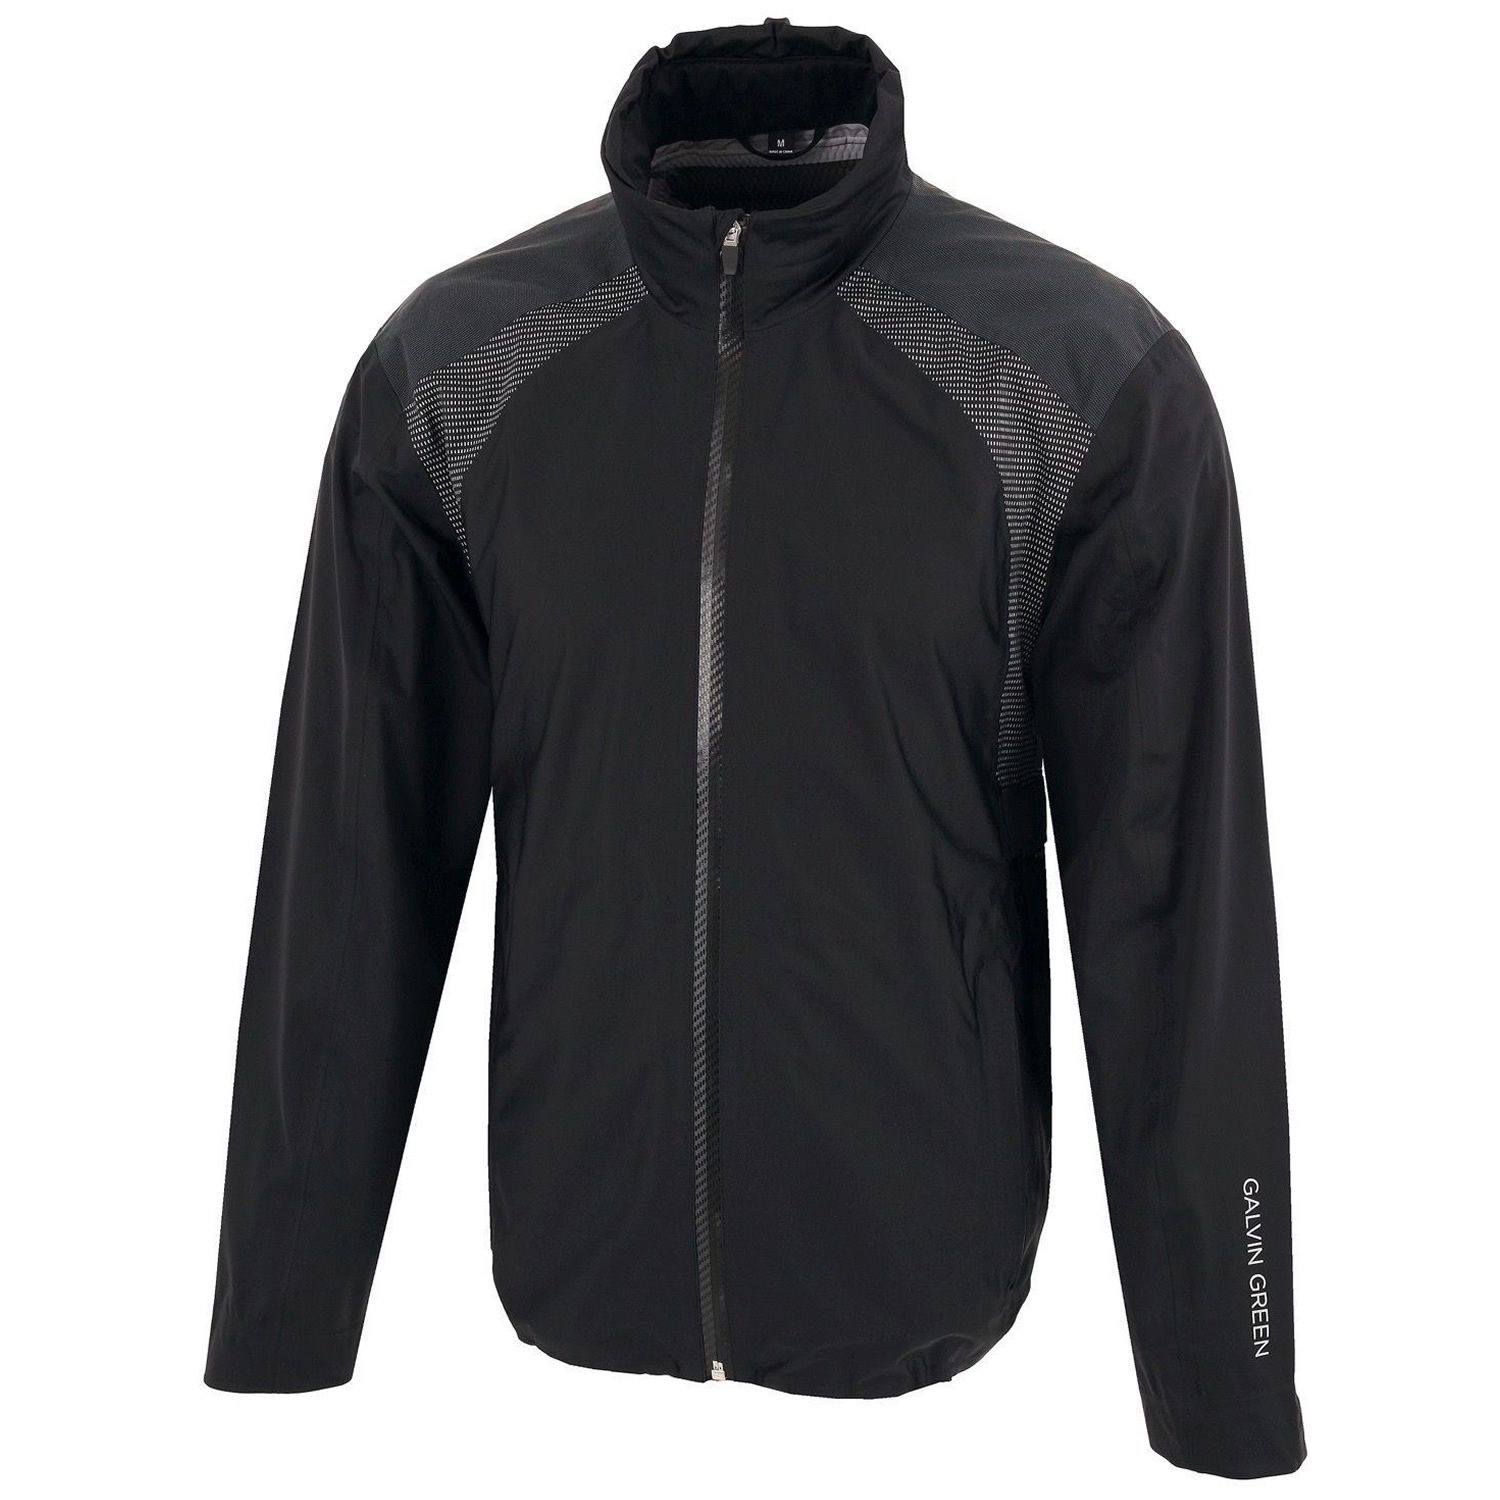 Image of Galvin Green Archie Gore-Tex C-Knit Waterproof Golf Jacket